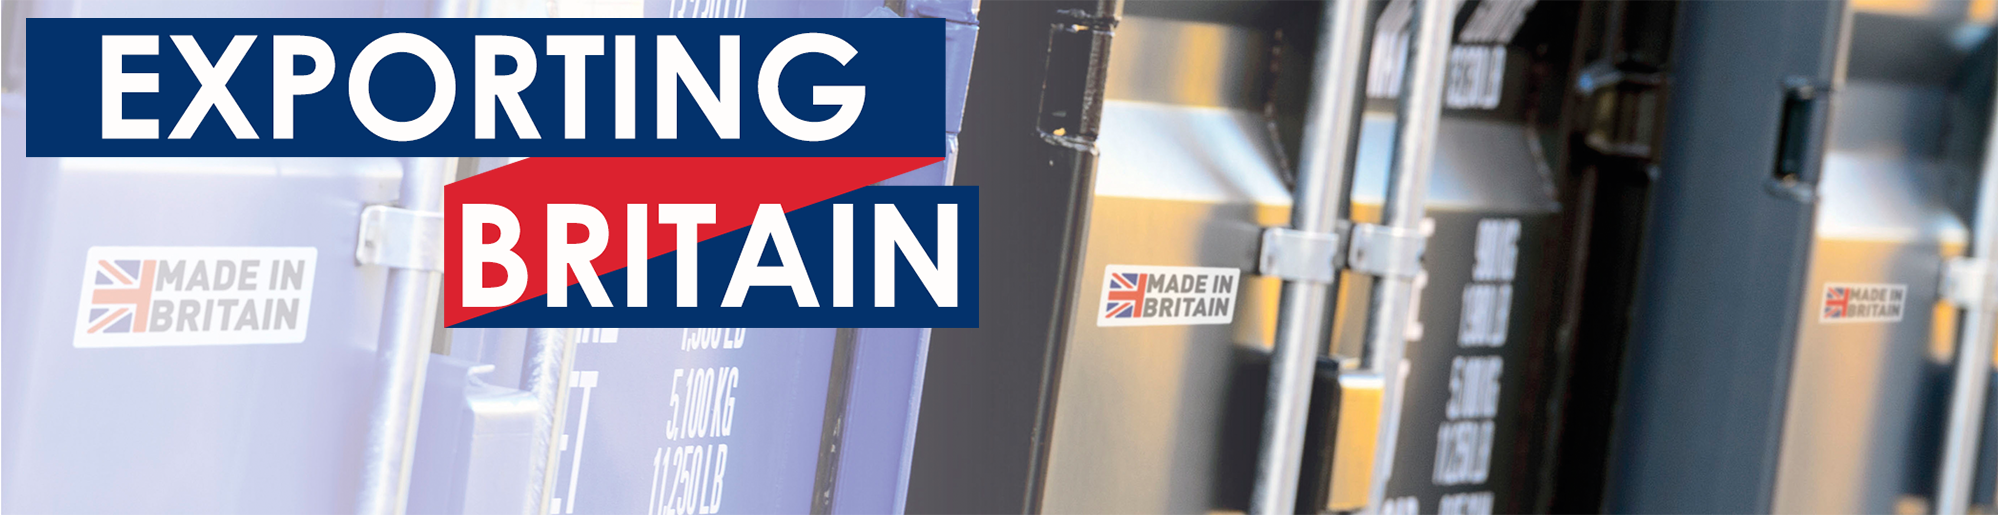 Exporting the British market through free Made in Britain logo